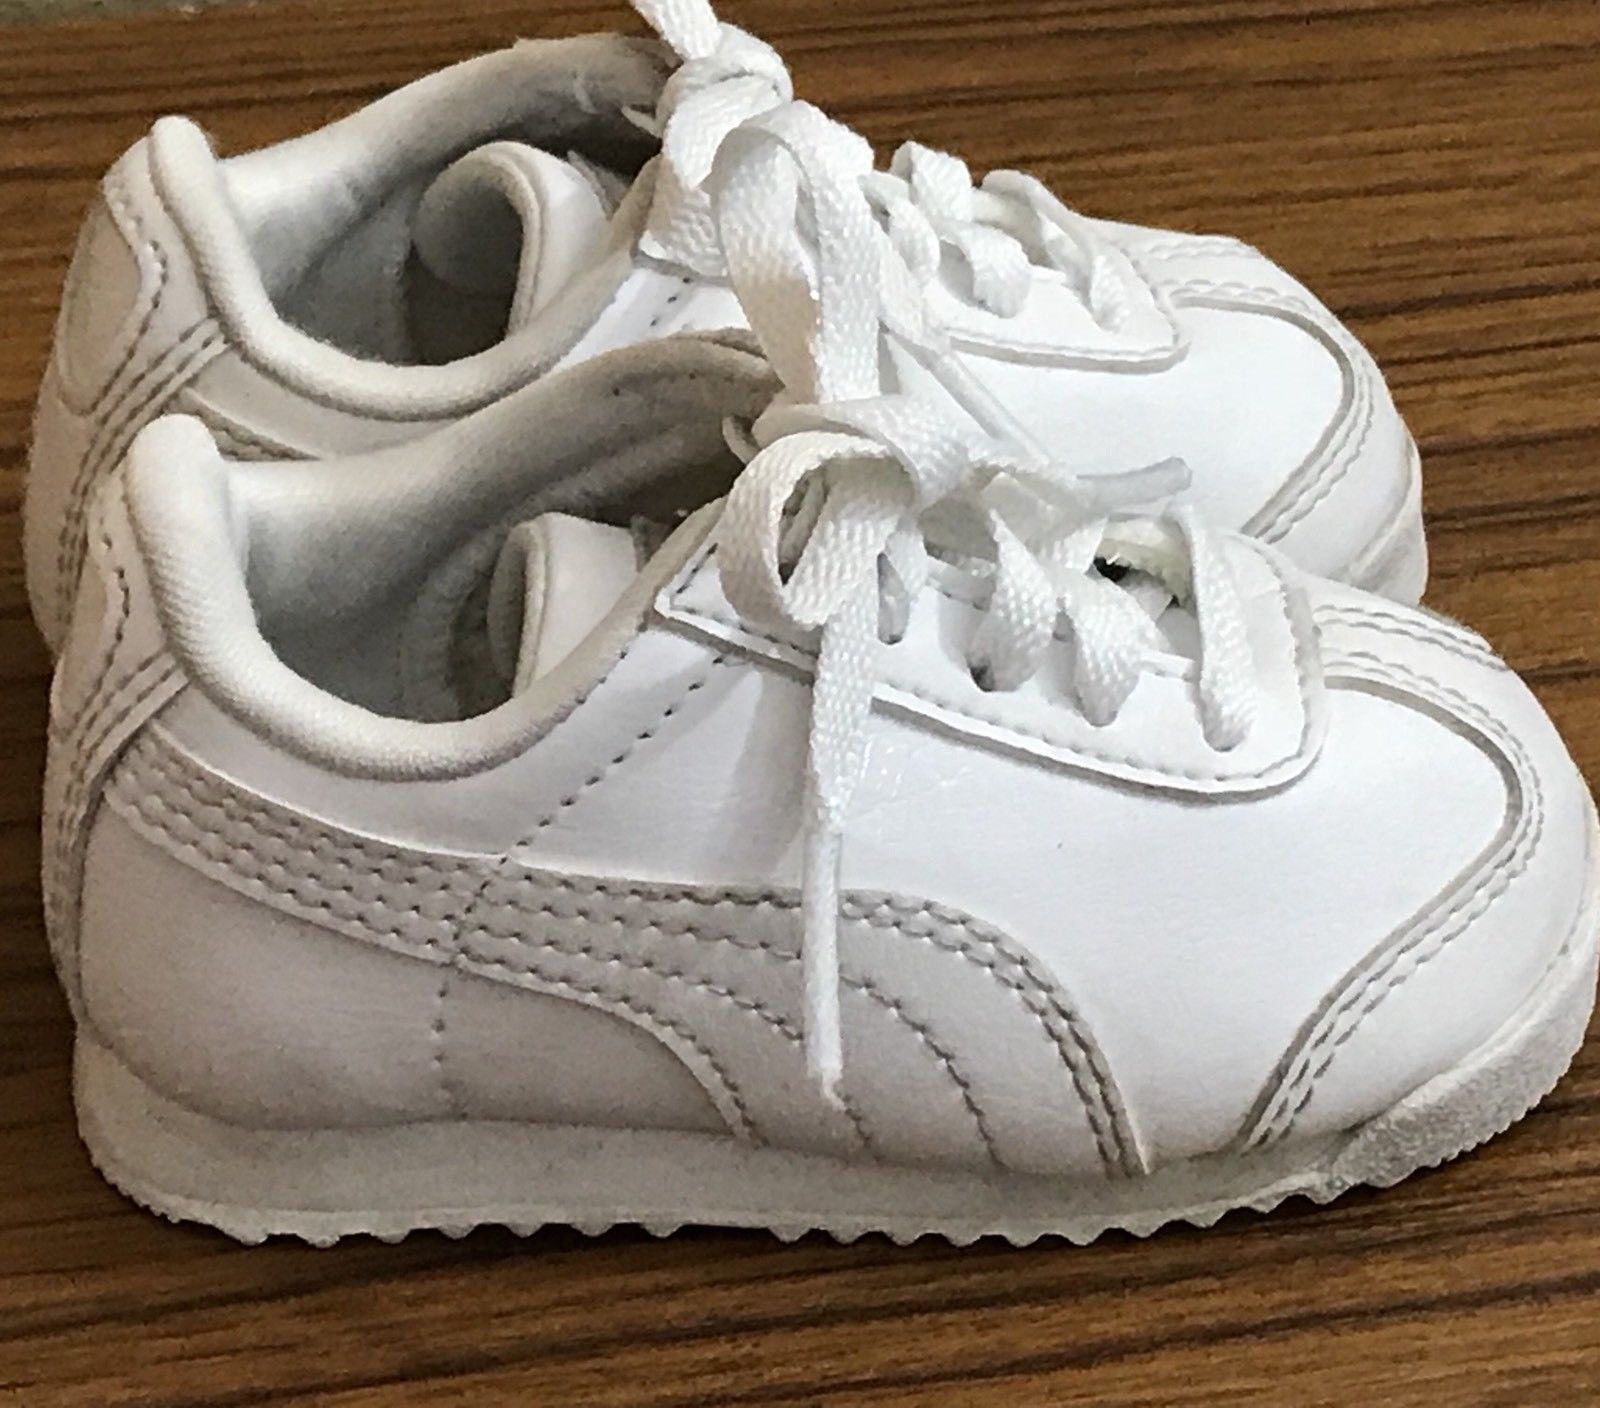 8e7667506f72 Puma Kinder Fit White Leather Toddler Sneakers Boy Girls Size 3